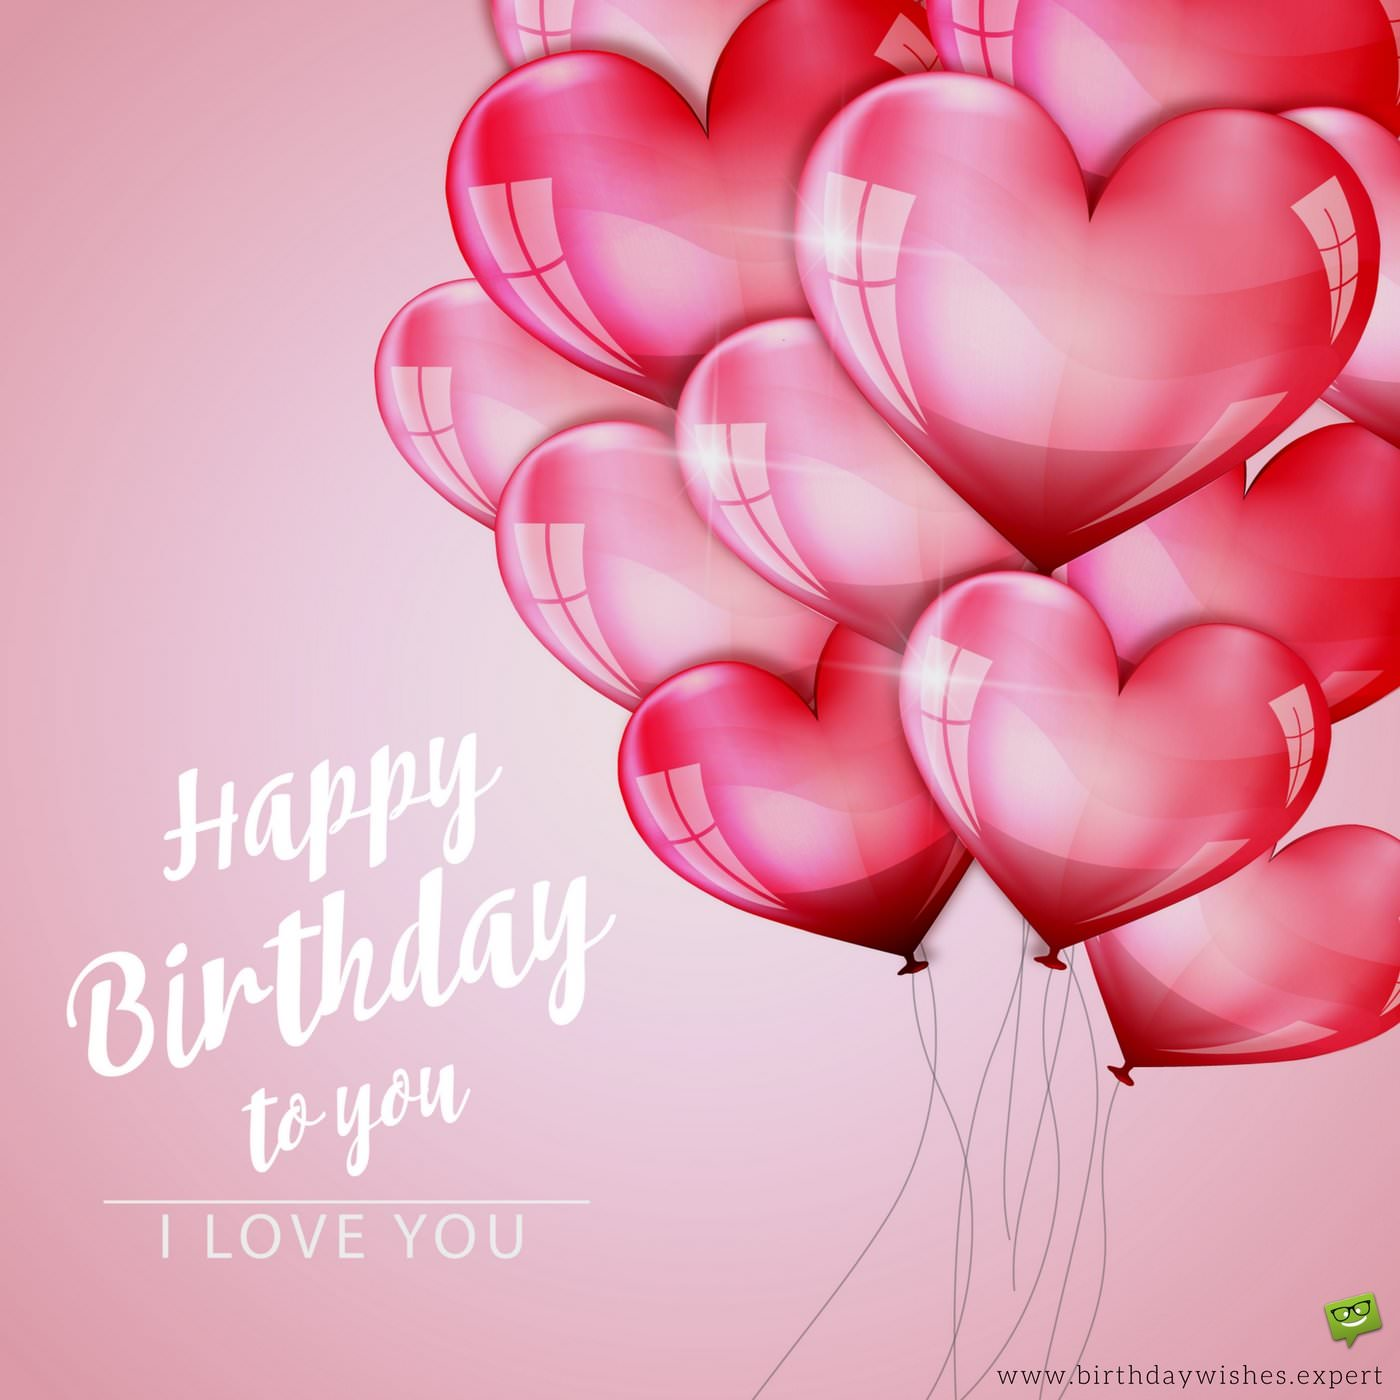 My girls special day birthday wishes for your girlfriend i love you kristyandbryce Image collections